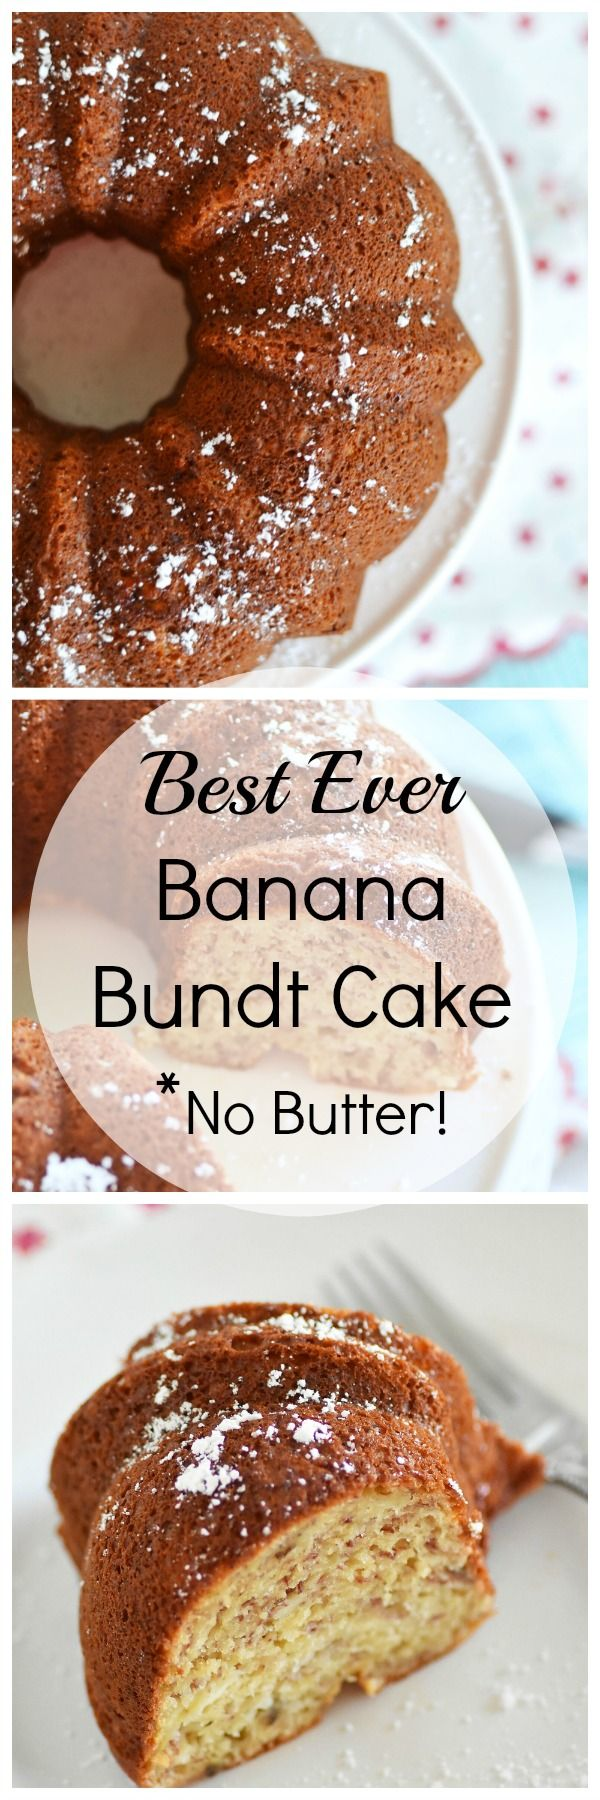 Best Ever Banana Bundt Cake Recipe is made with no butter and has a ...